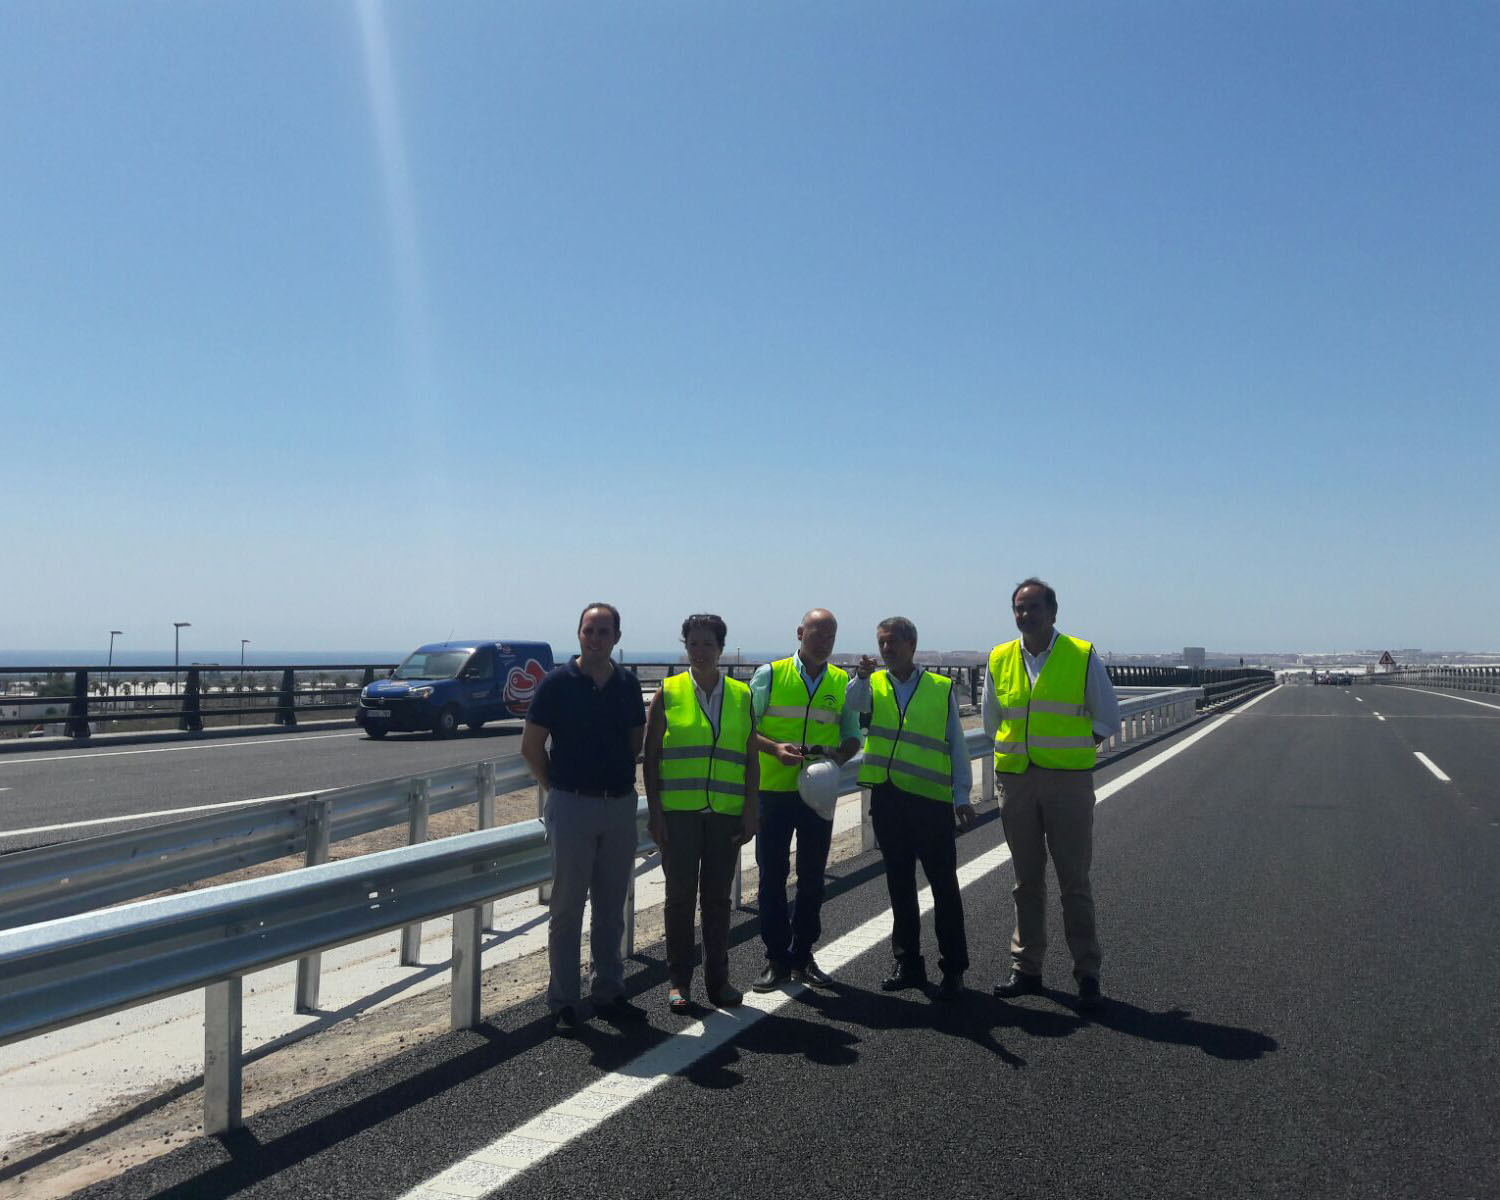 ACCIONA completes the first section of the Roquetas de Mar bypass, now open to traffic